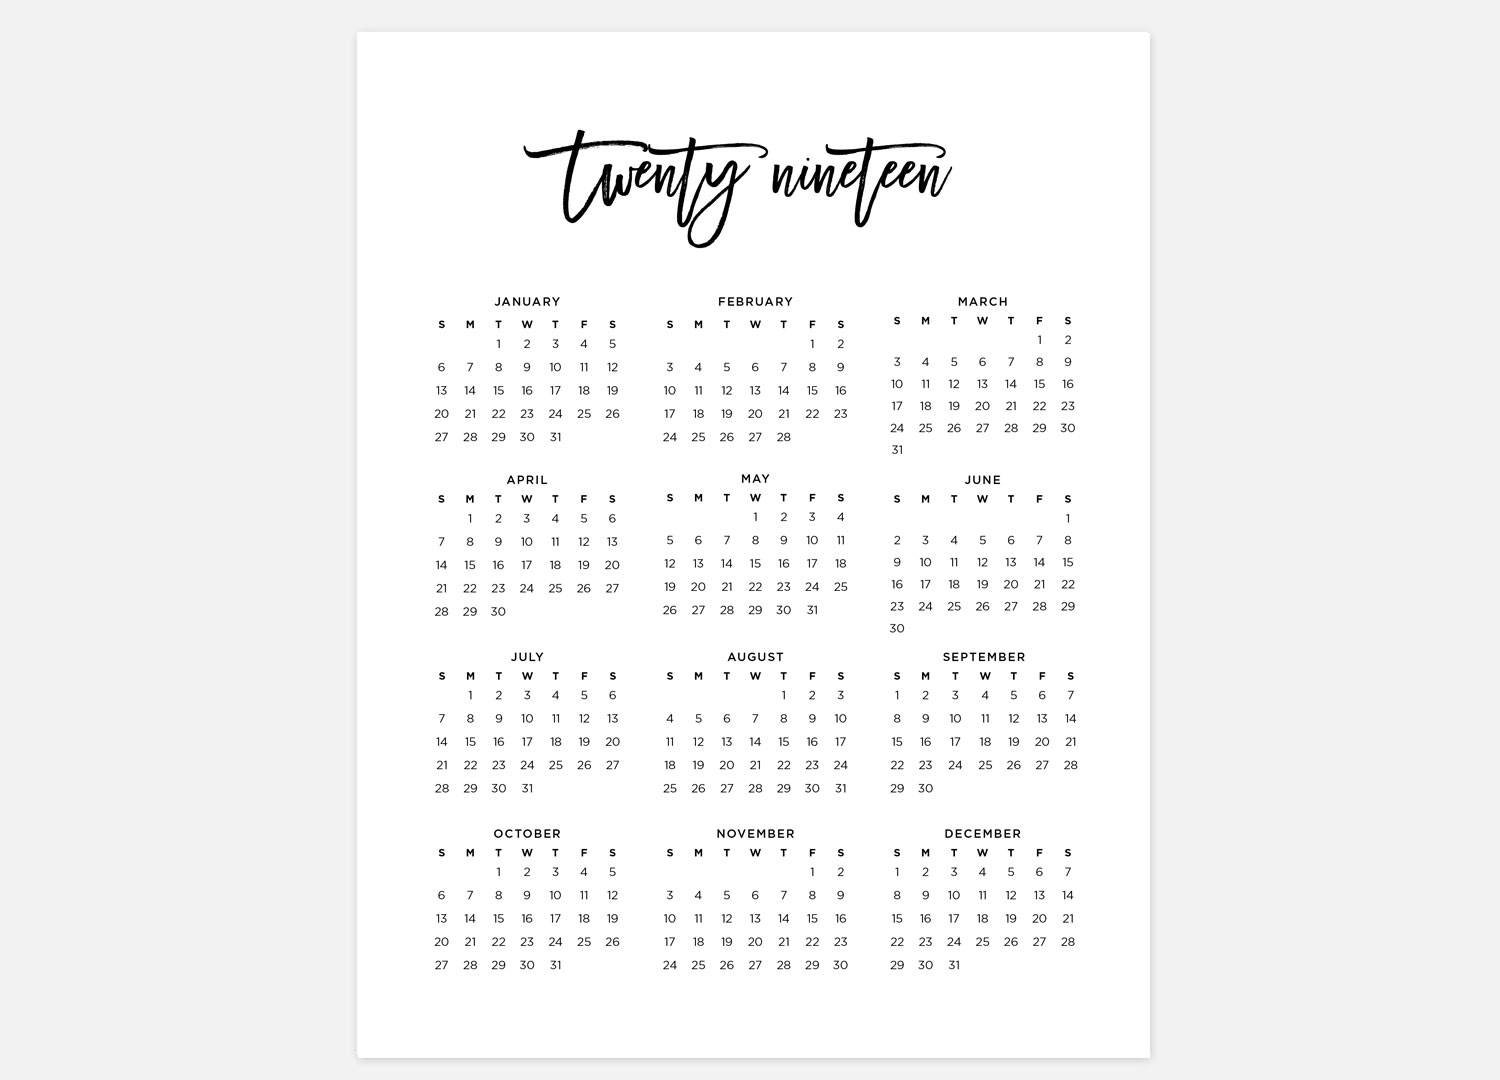 2019 Calendar Simple Calendar 2019 Year Calendar 2019 | Etsy Calendar 2019 At A Glance